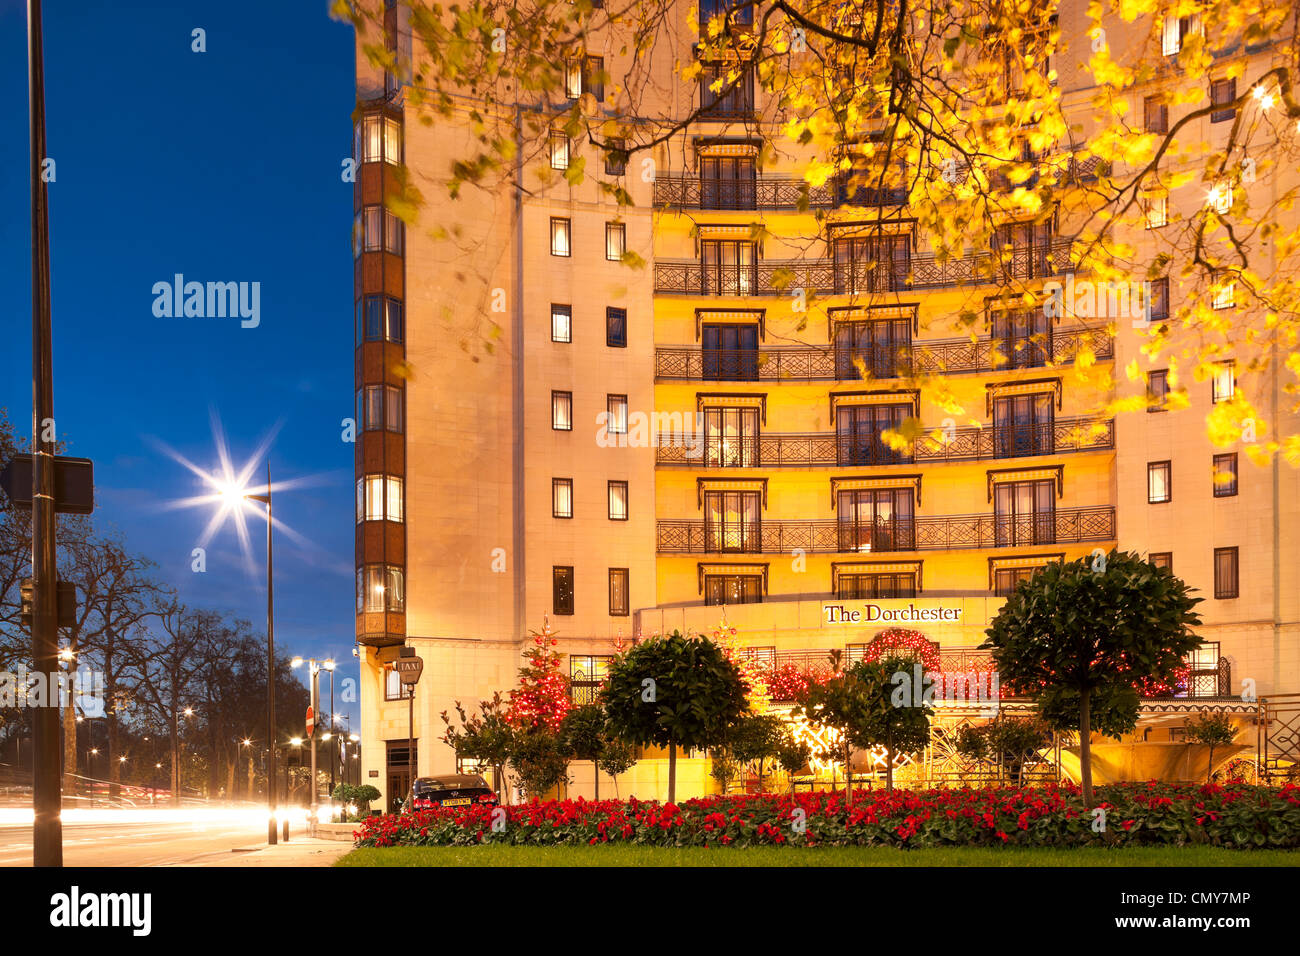 The Dorchester Hotel Park Lane London with Christmas decorations at dusk. Five star luxury hotel facade at night. - Stock Image